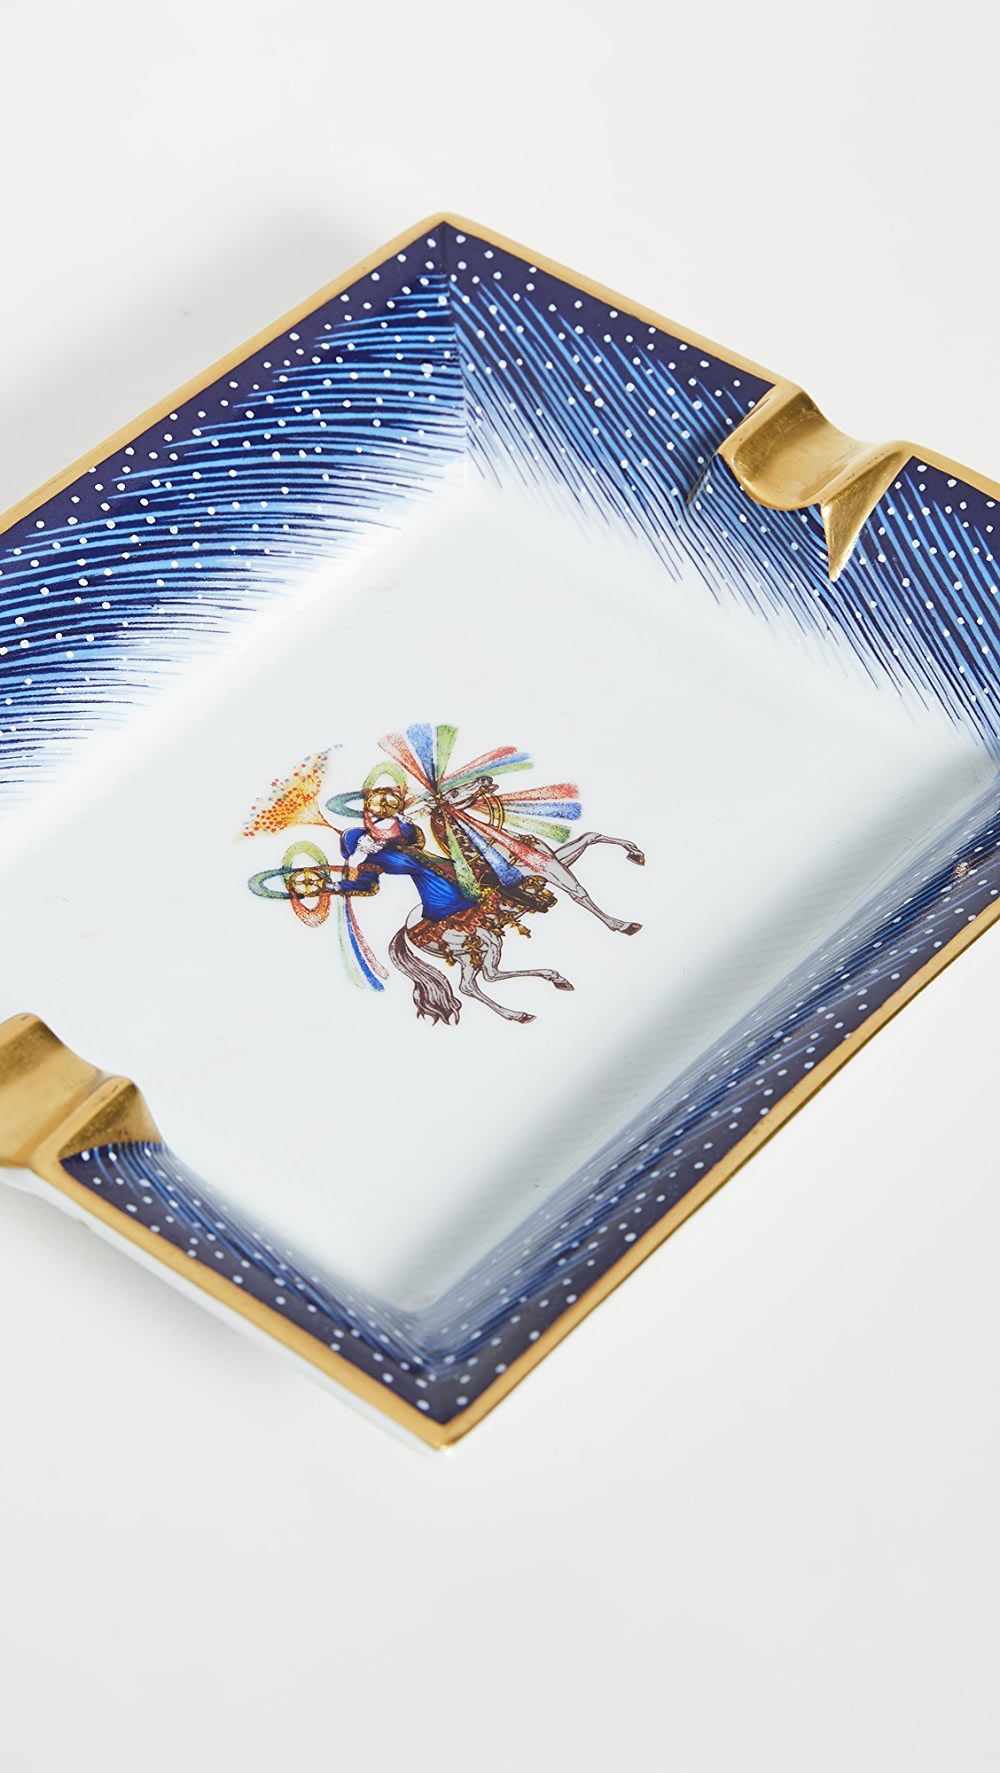 Amicable What Goes Around Comes Around - Hermes Blue Porcelain Ashtray Mild And Mellow